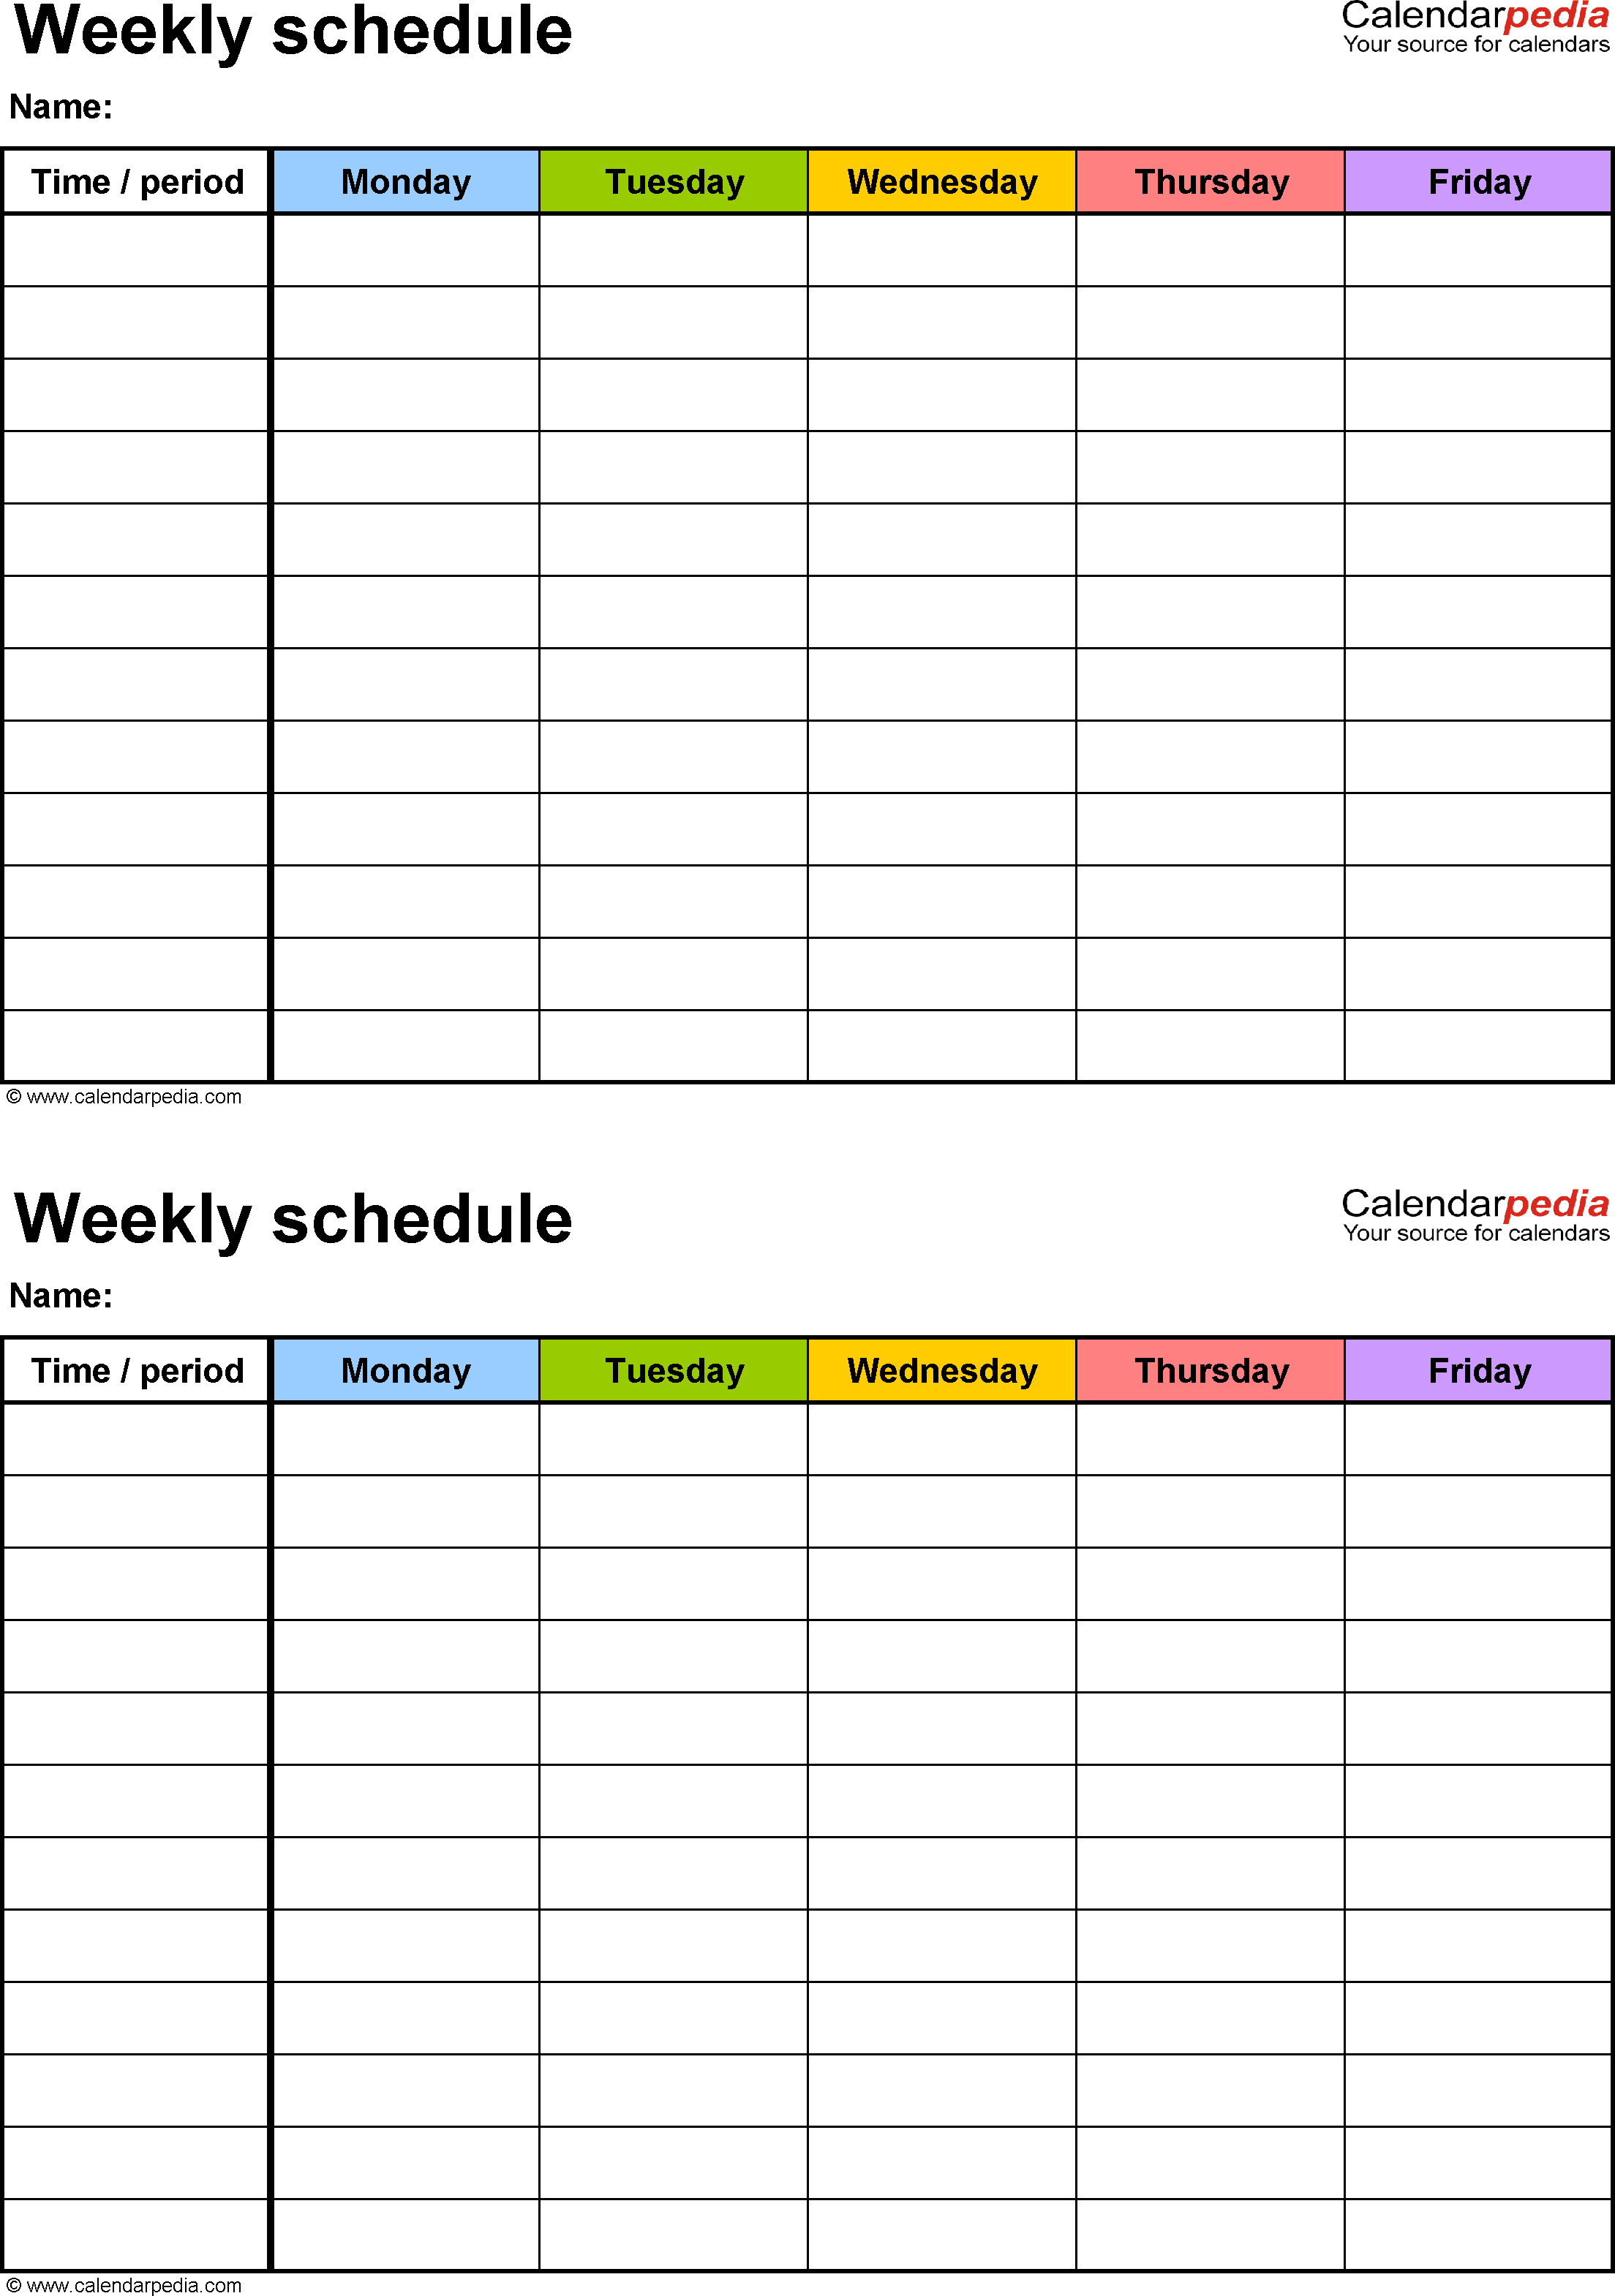 Free Weekly Schedule Templates For Excel - 18 Templates in Blank Calendar Printable With Times